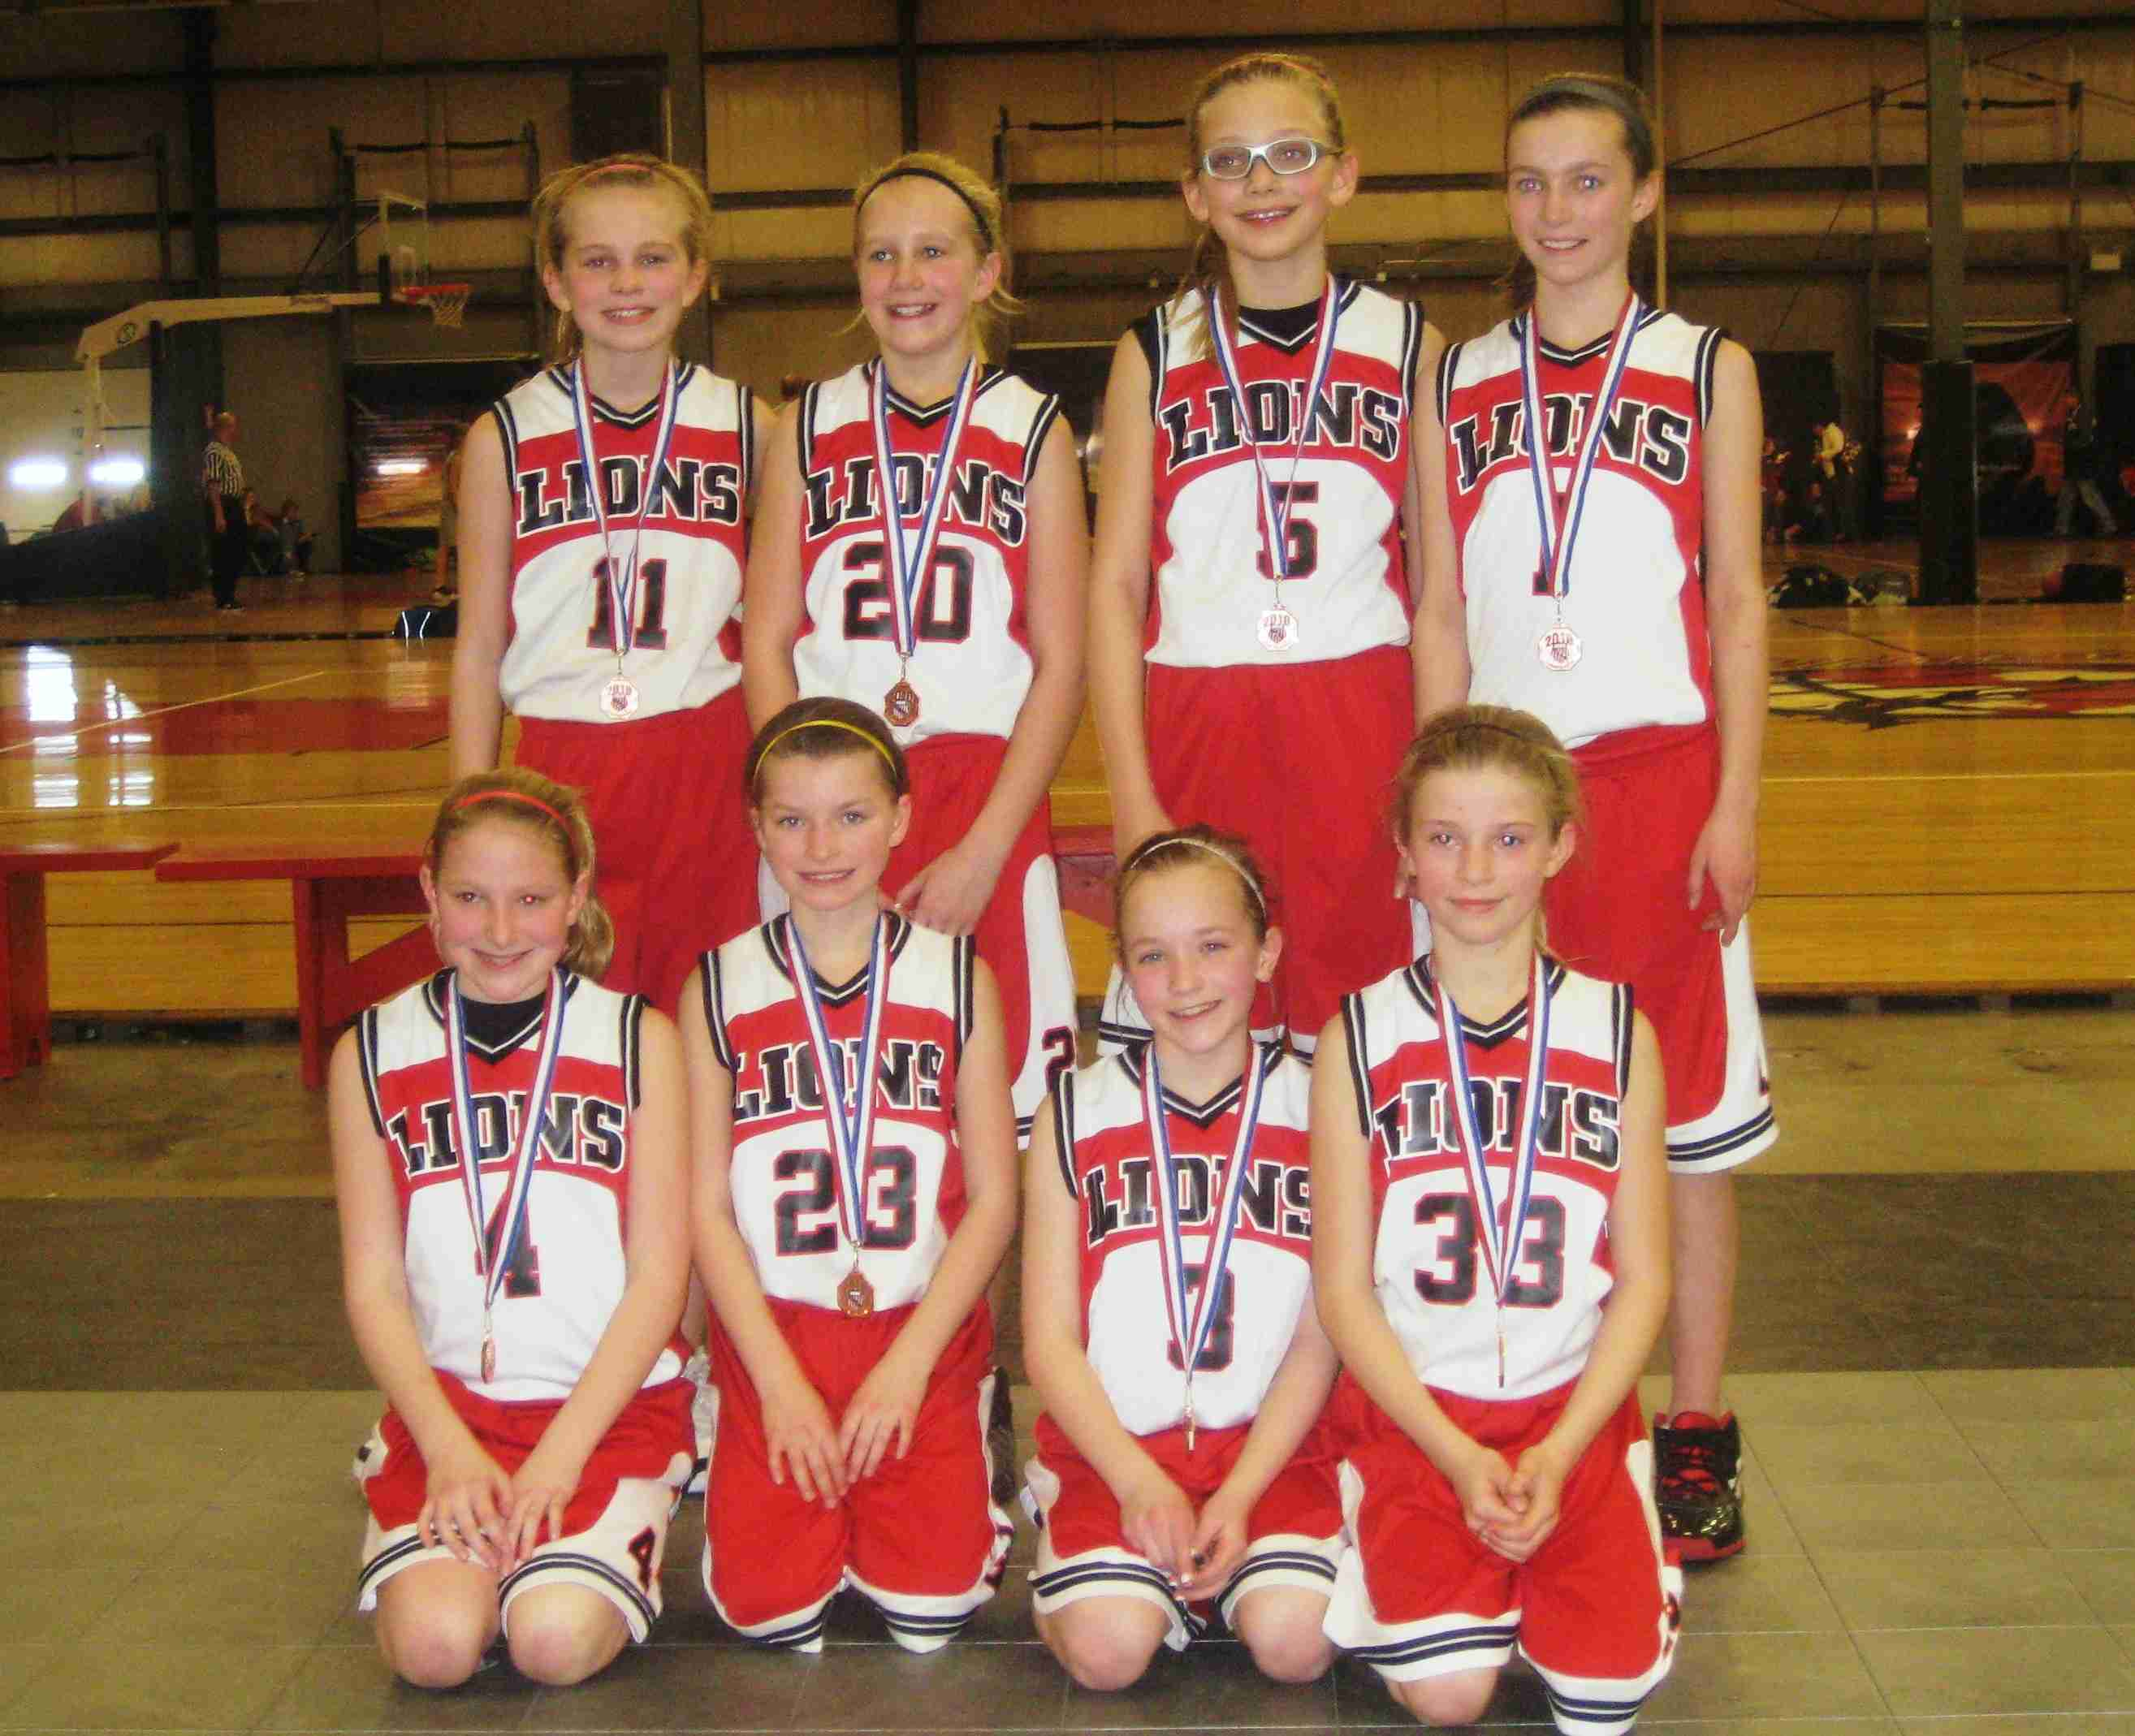 LM Lions 4th State AAU.jpg